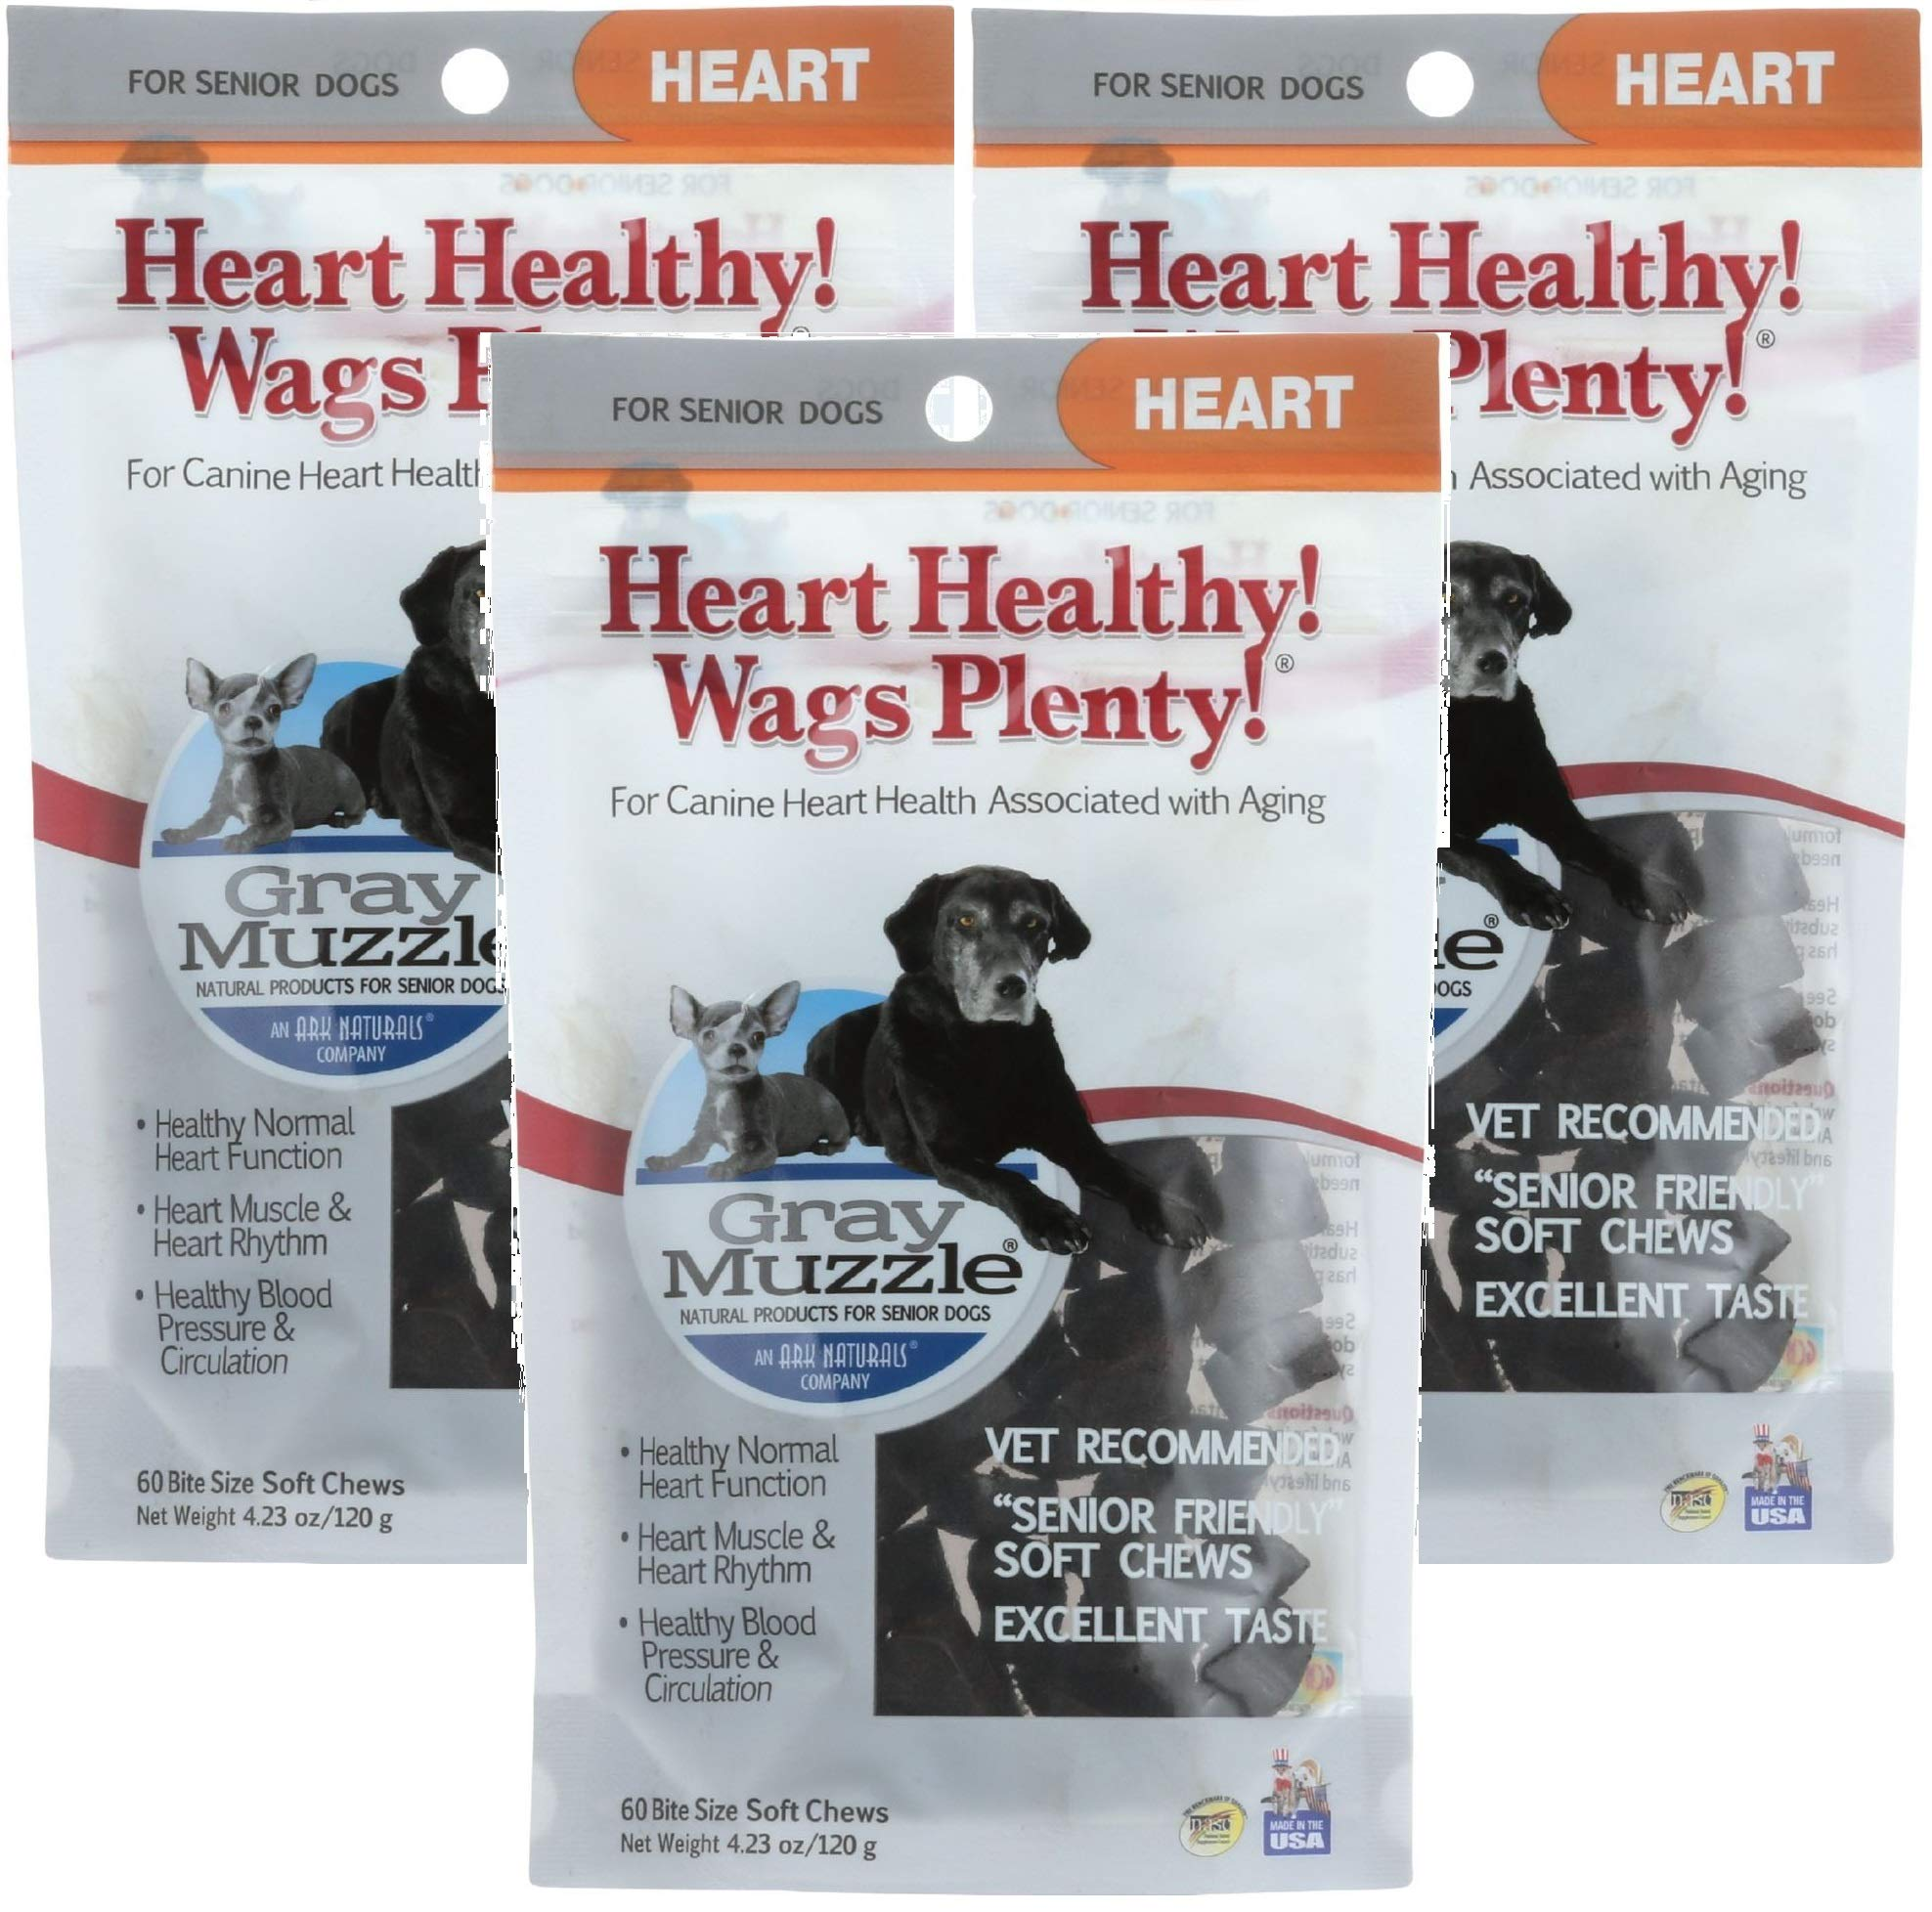 ARK NATURALS (3 Pack) Company Wags Plenty Heart Healthy Grey Muzzle, Senior Dogs, 60 Count Each